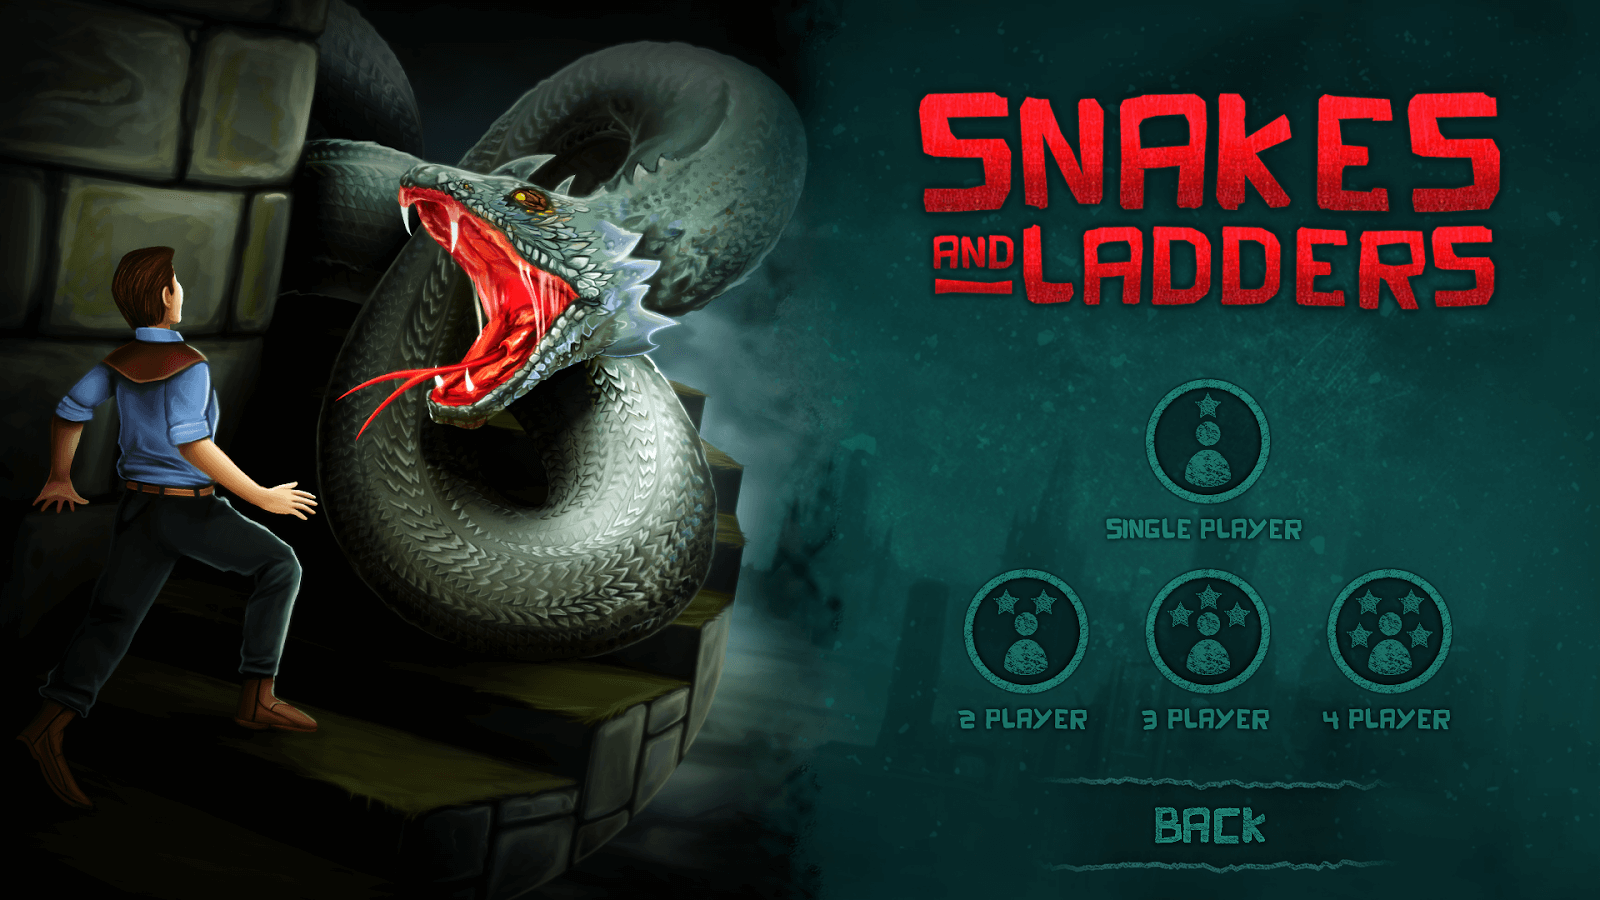 Snakes and Ladders 3D mobile game home screen